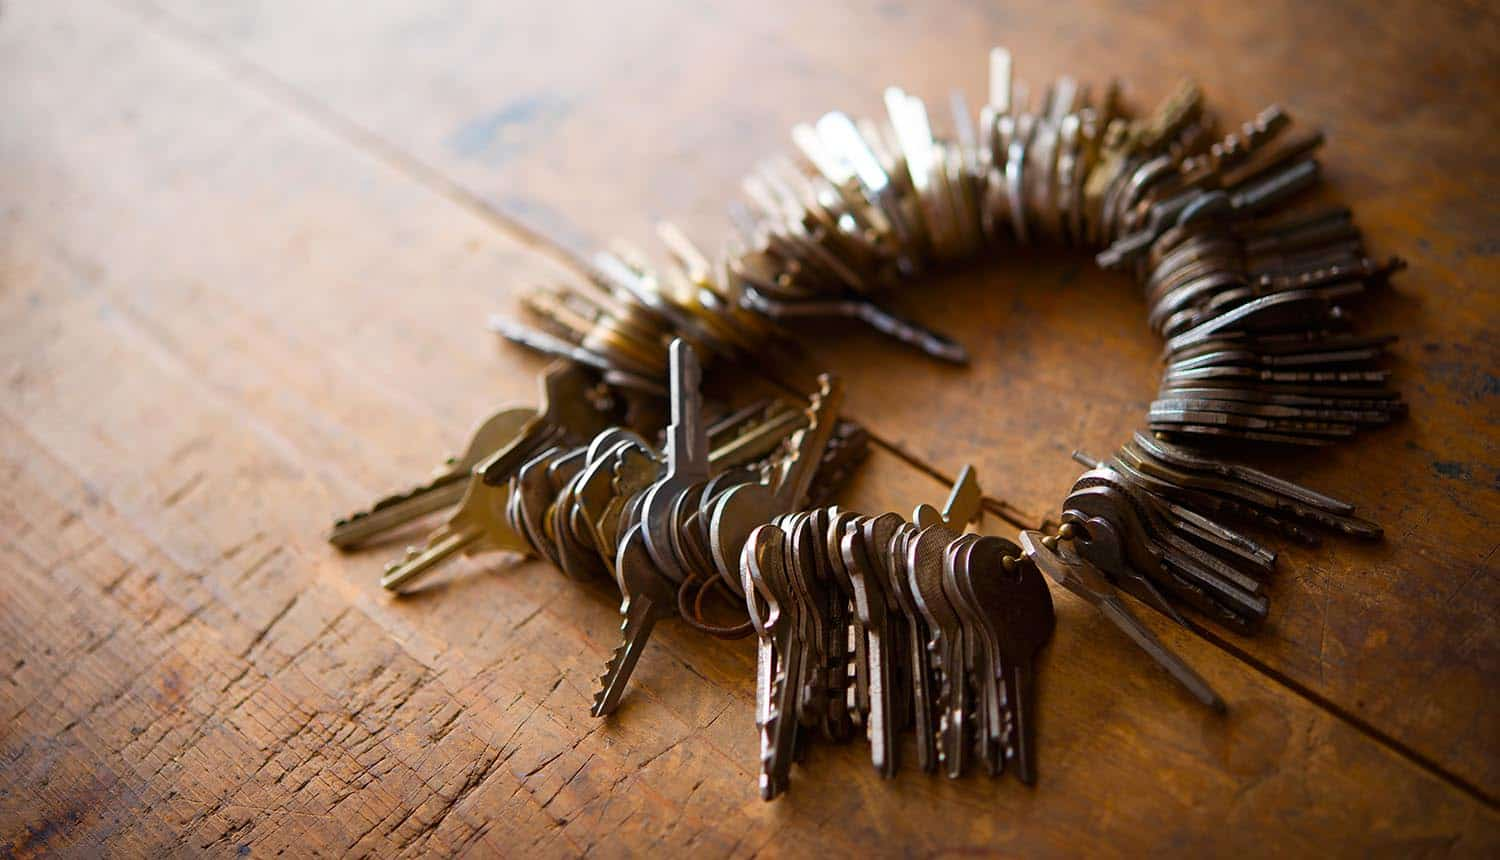 Many old keys on a well used old wooden desk show security flaws in password managers